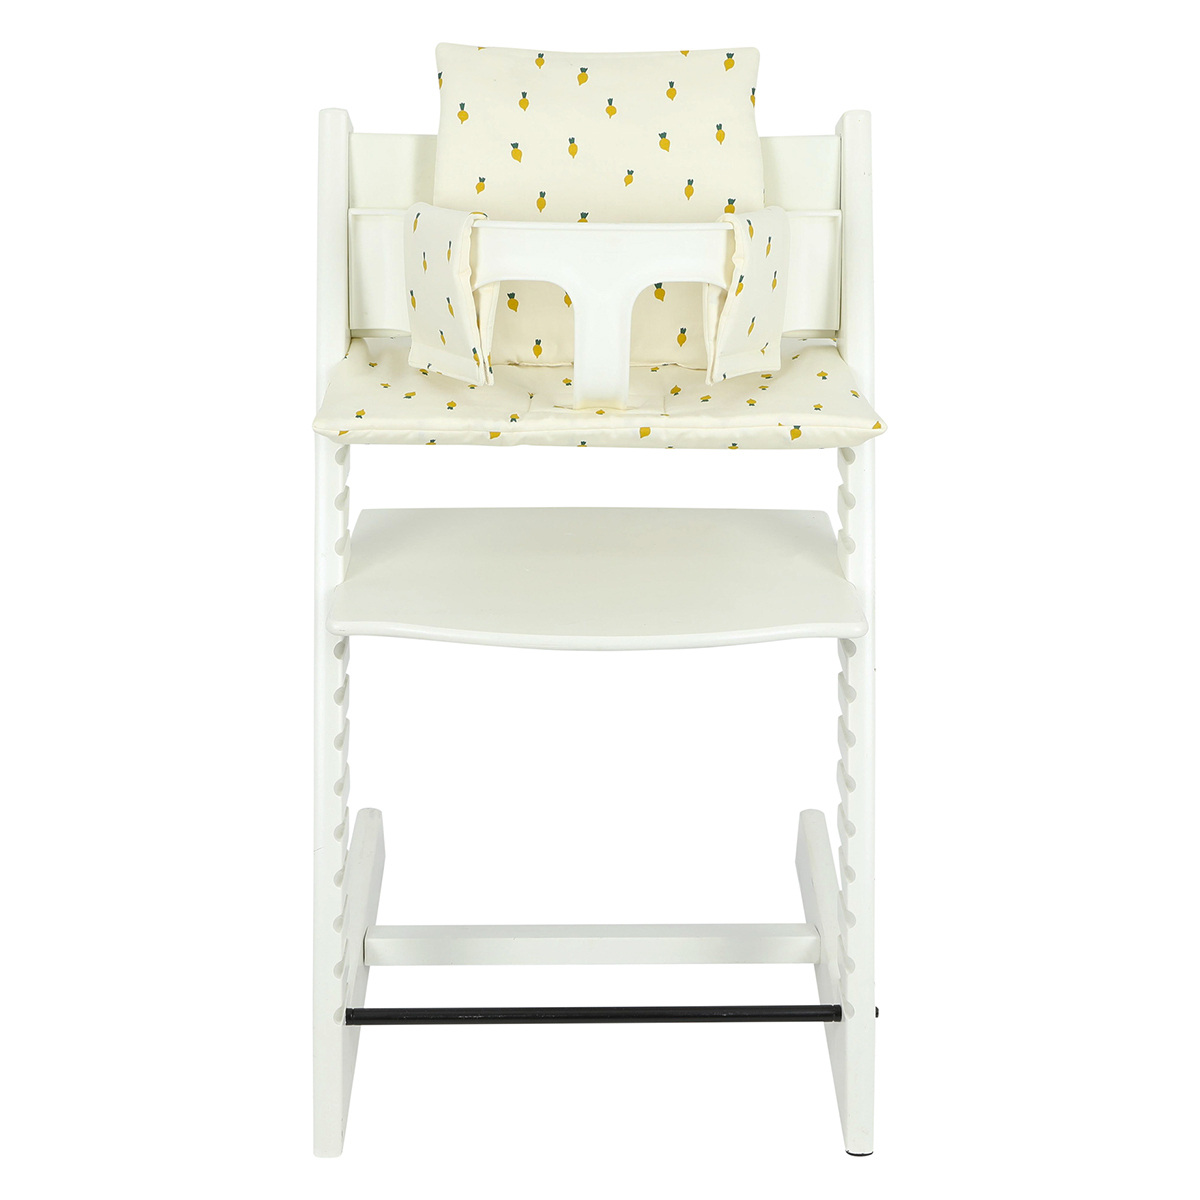 Chaise haute Coussin Classic Tripp Trapp - Tiny Turnip Coussin Classic Tripp Trapp - Tiny Turnip